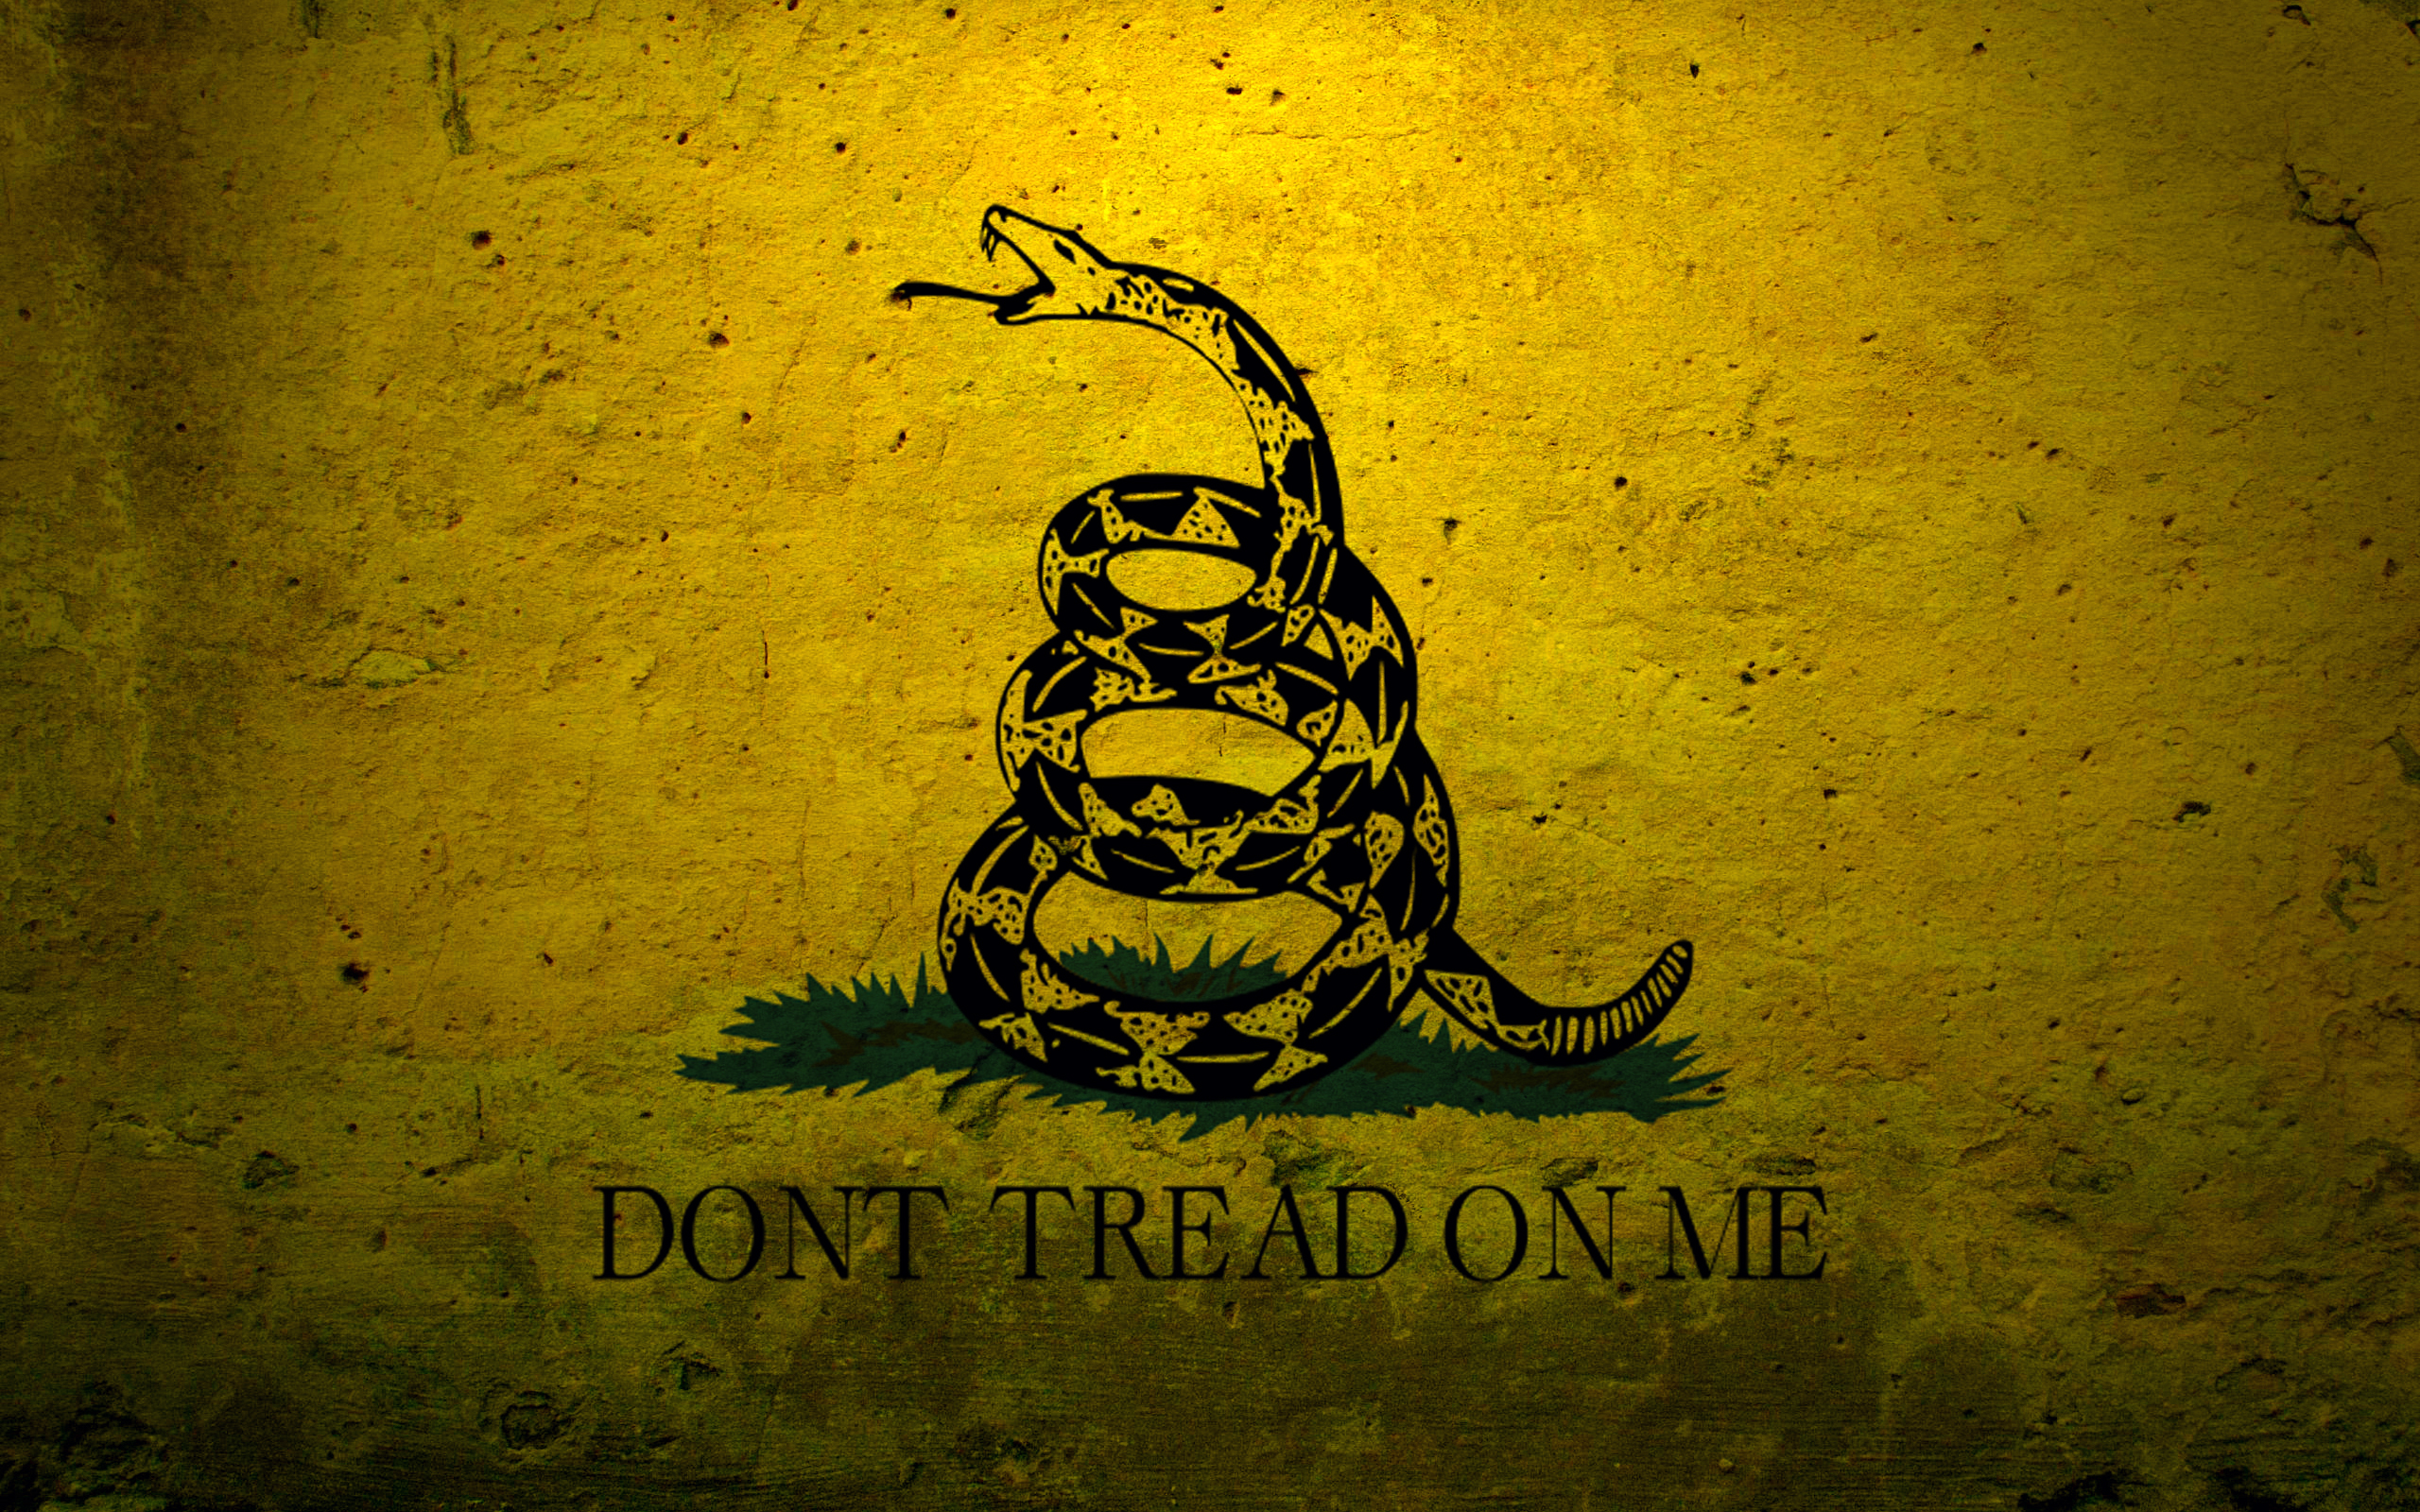 Military Flags Usa Navy Concrete Dont Tread On Me Gadsden Flag Wallpaper